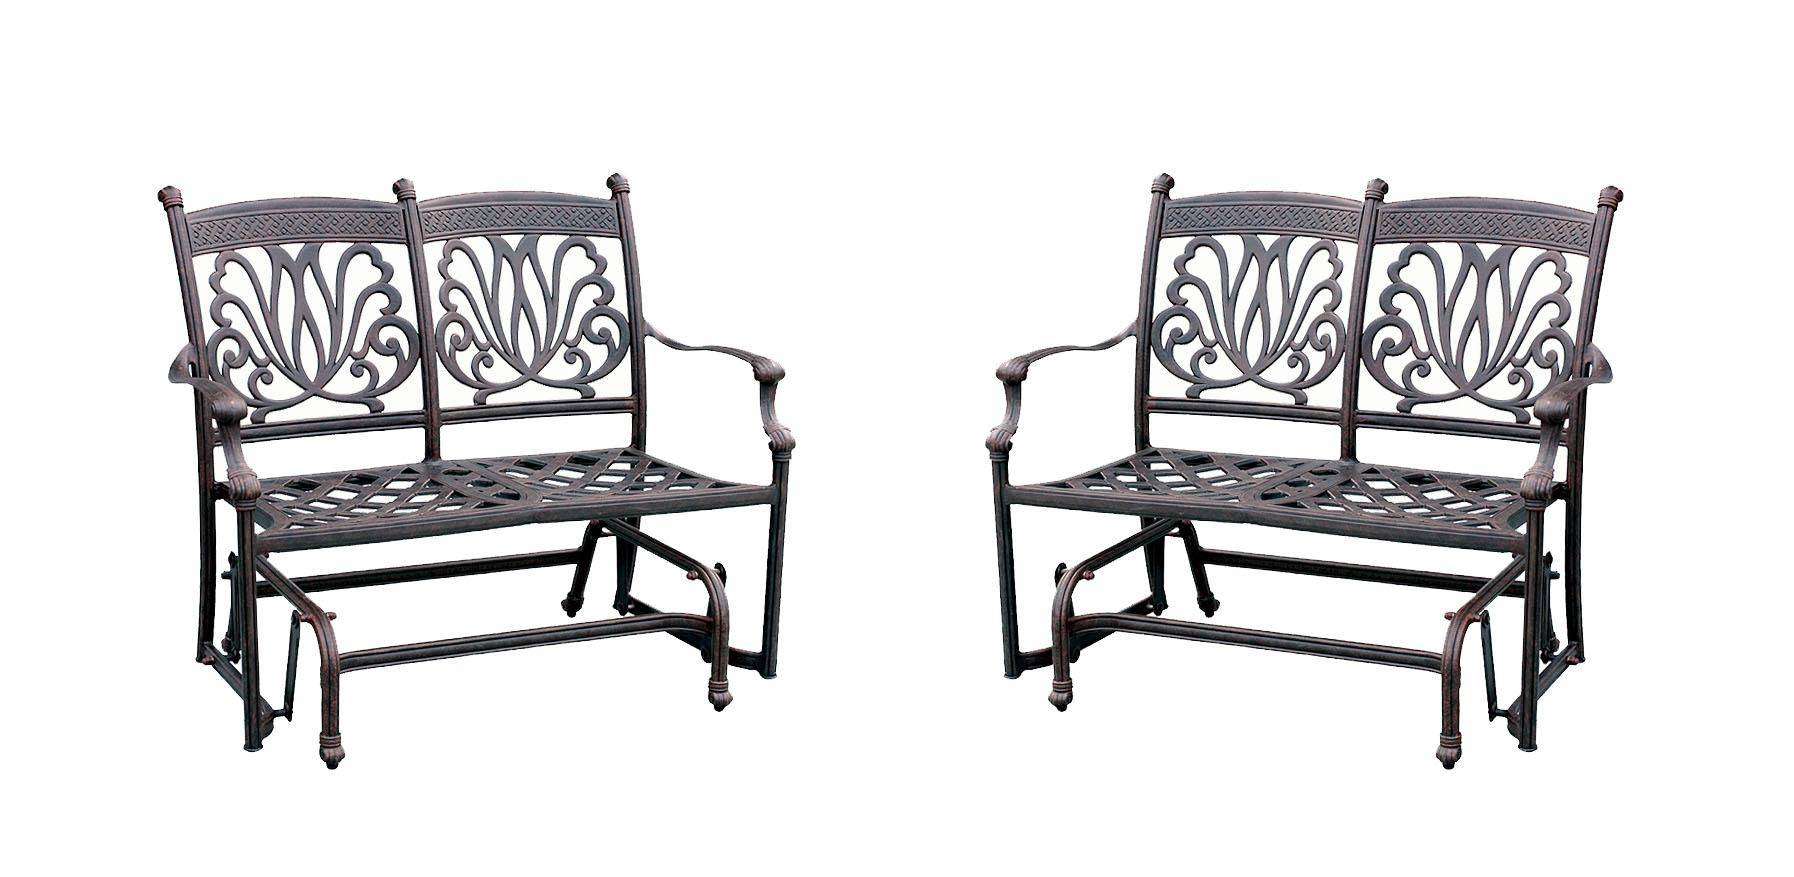 Ariana Cast Aluminum Bench Loveseat Glider W/ Sunbrella With Regard To Aluminum Glider Benches With Cushion (View 8 of 25)